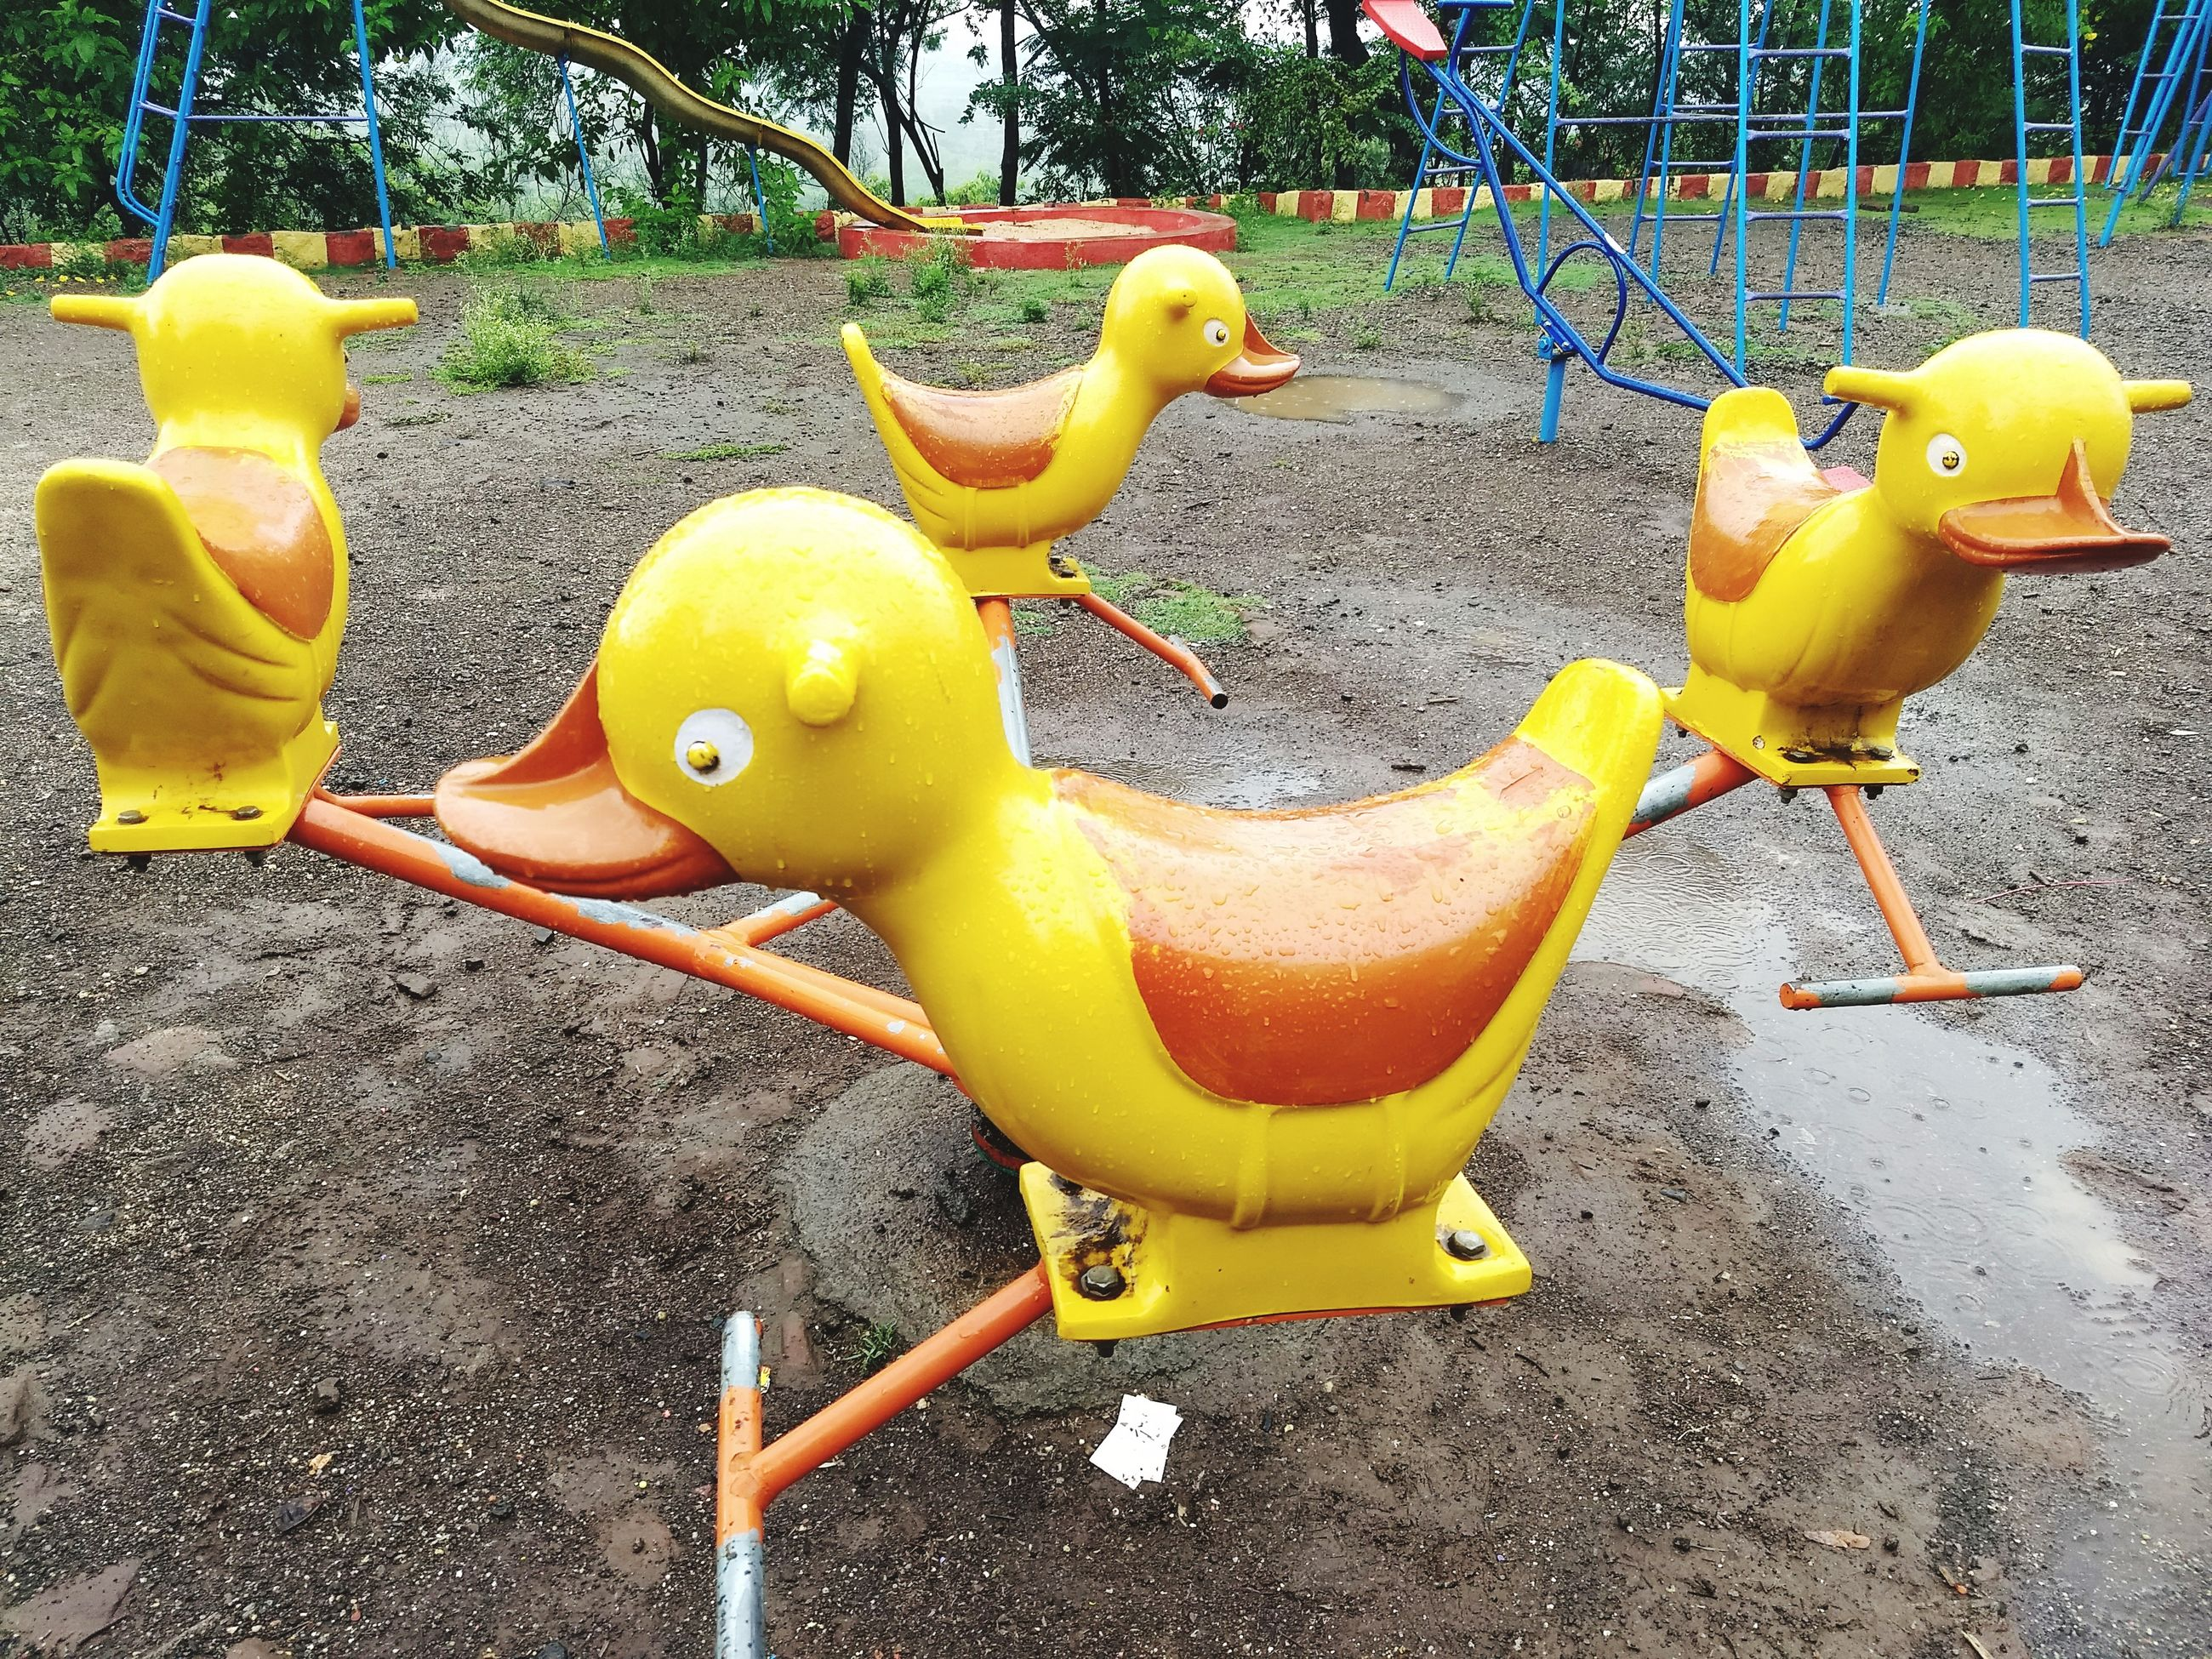 yellow, childhood, animal representation, no people, playground, day, outdoors, outdoor play equipment, close-up